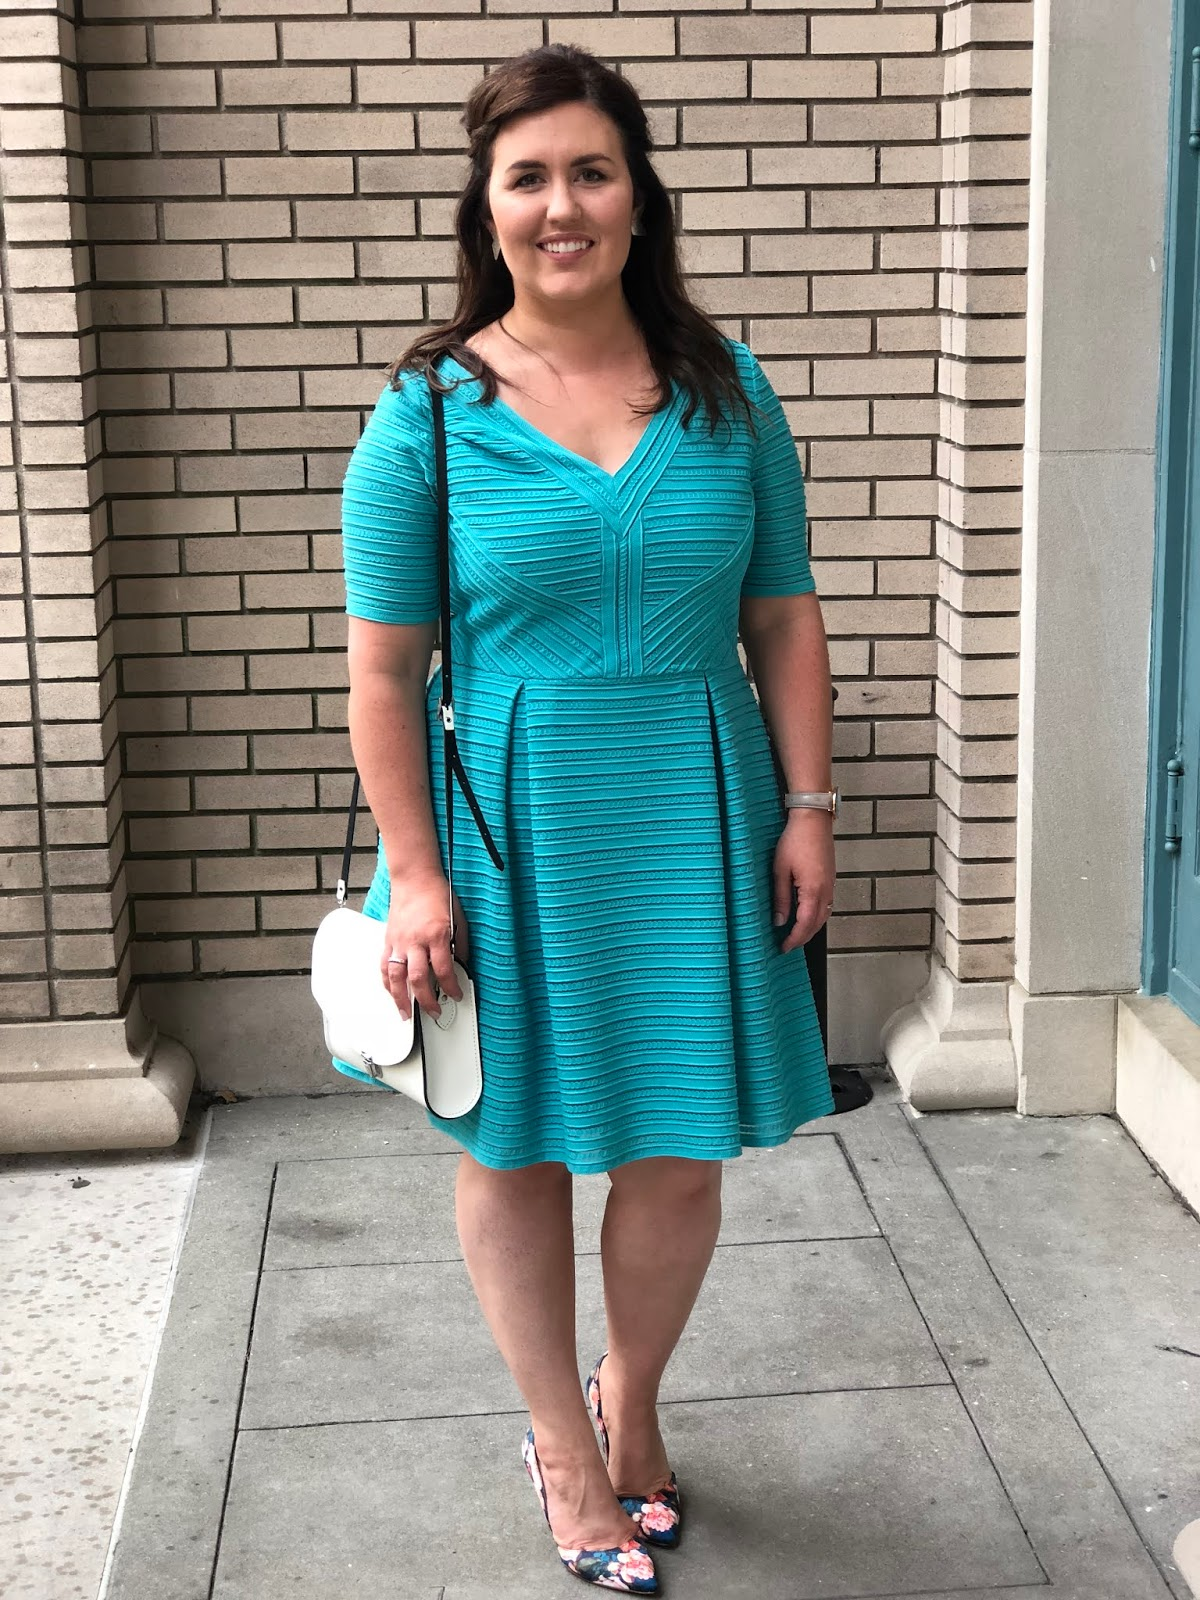 Popular North Carolina style blogger Rebecca Lately shares a summer wedding guest outfit. Check it out if you love shopping your own closet!